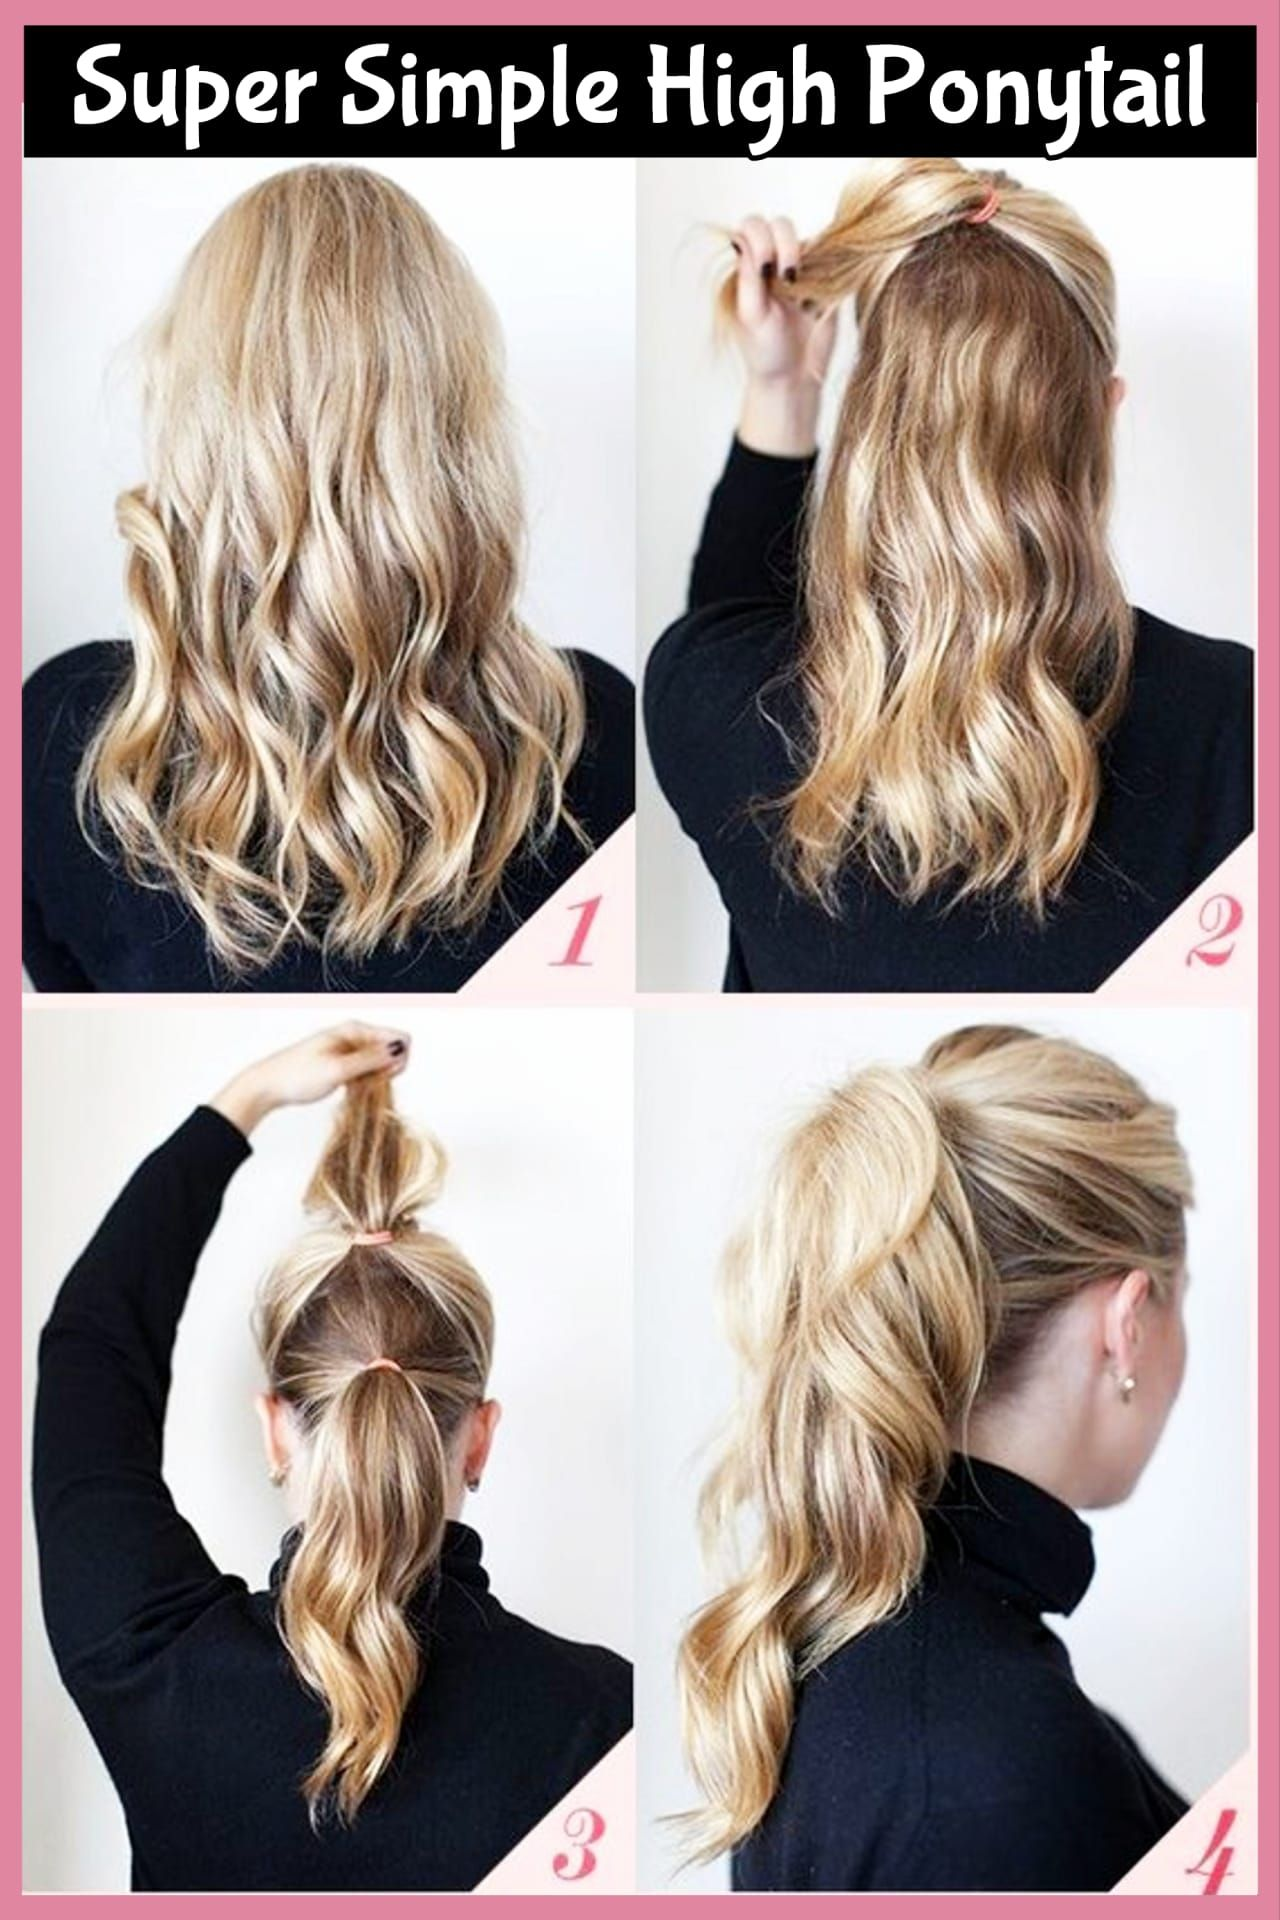 Tip A Better And Sassier Poofy Ponytail In Less Than 5 Minutes Clever Diy Ideas Ponytail Hairstyles Tutorial Lazy Hairstyles Office Hairstyles